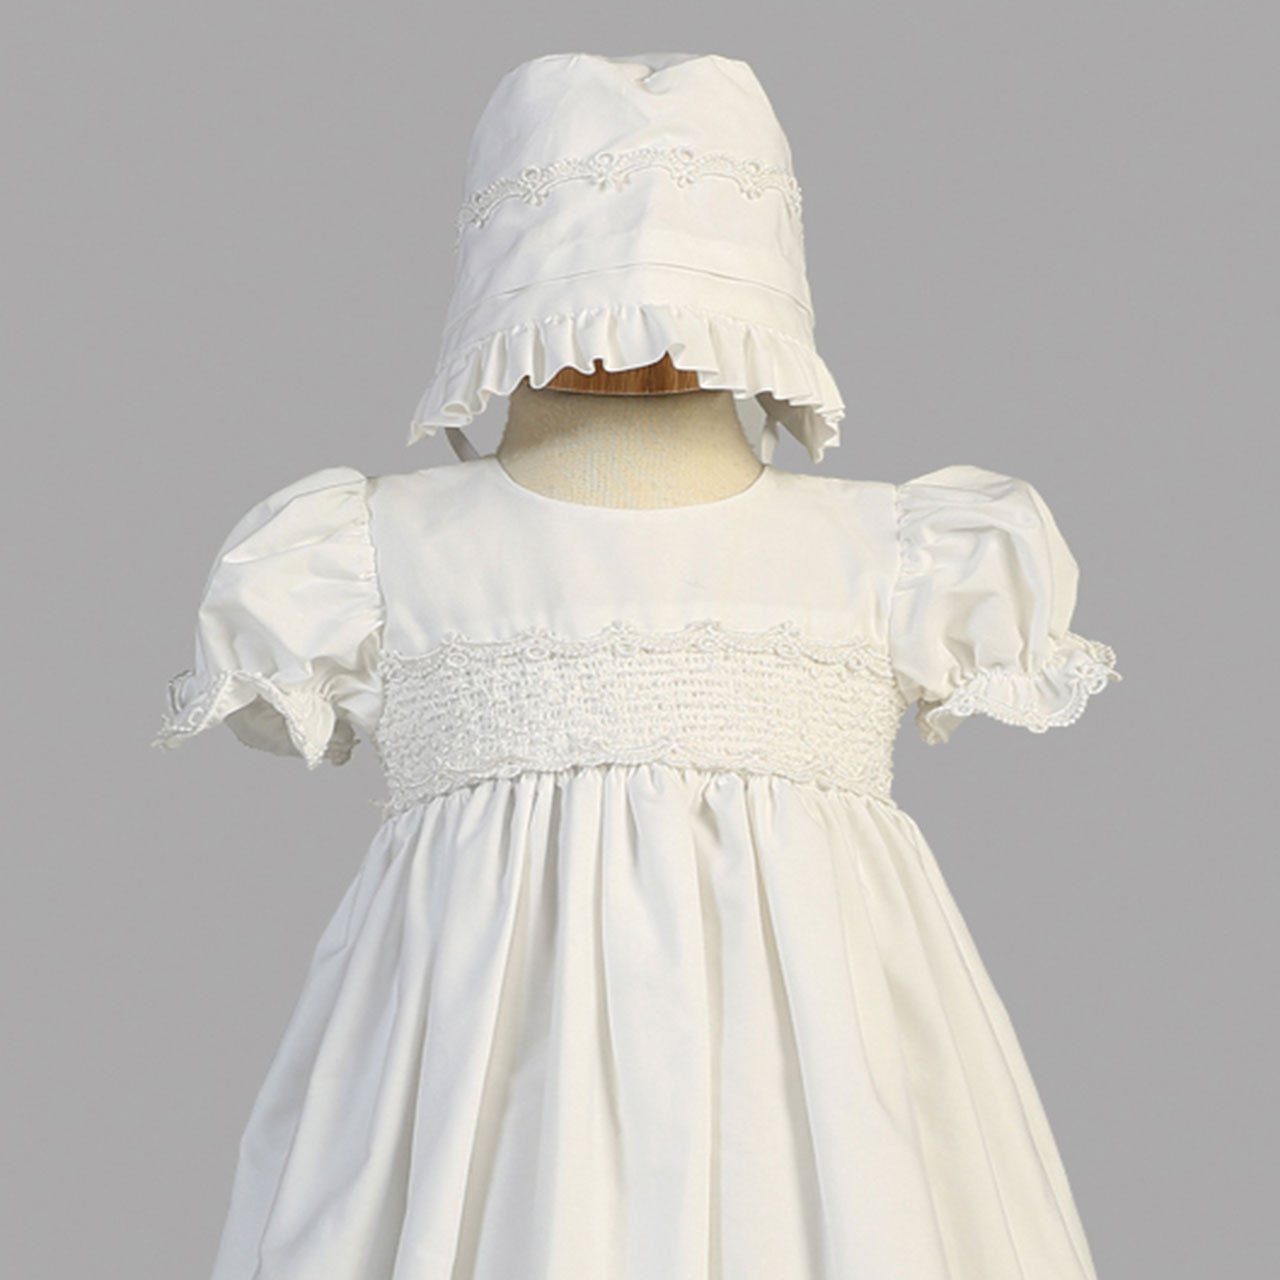 Detail of the Marie Cotton Christening Gown